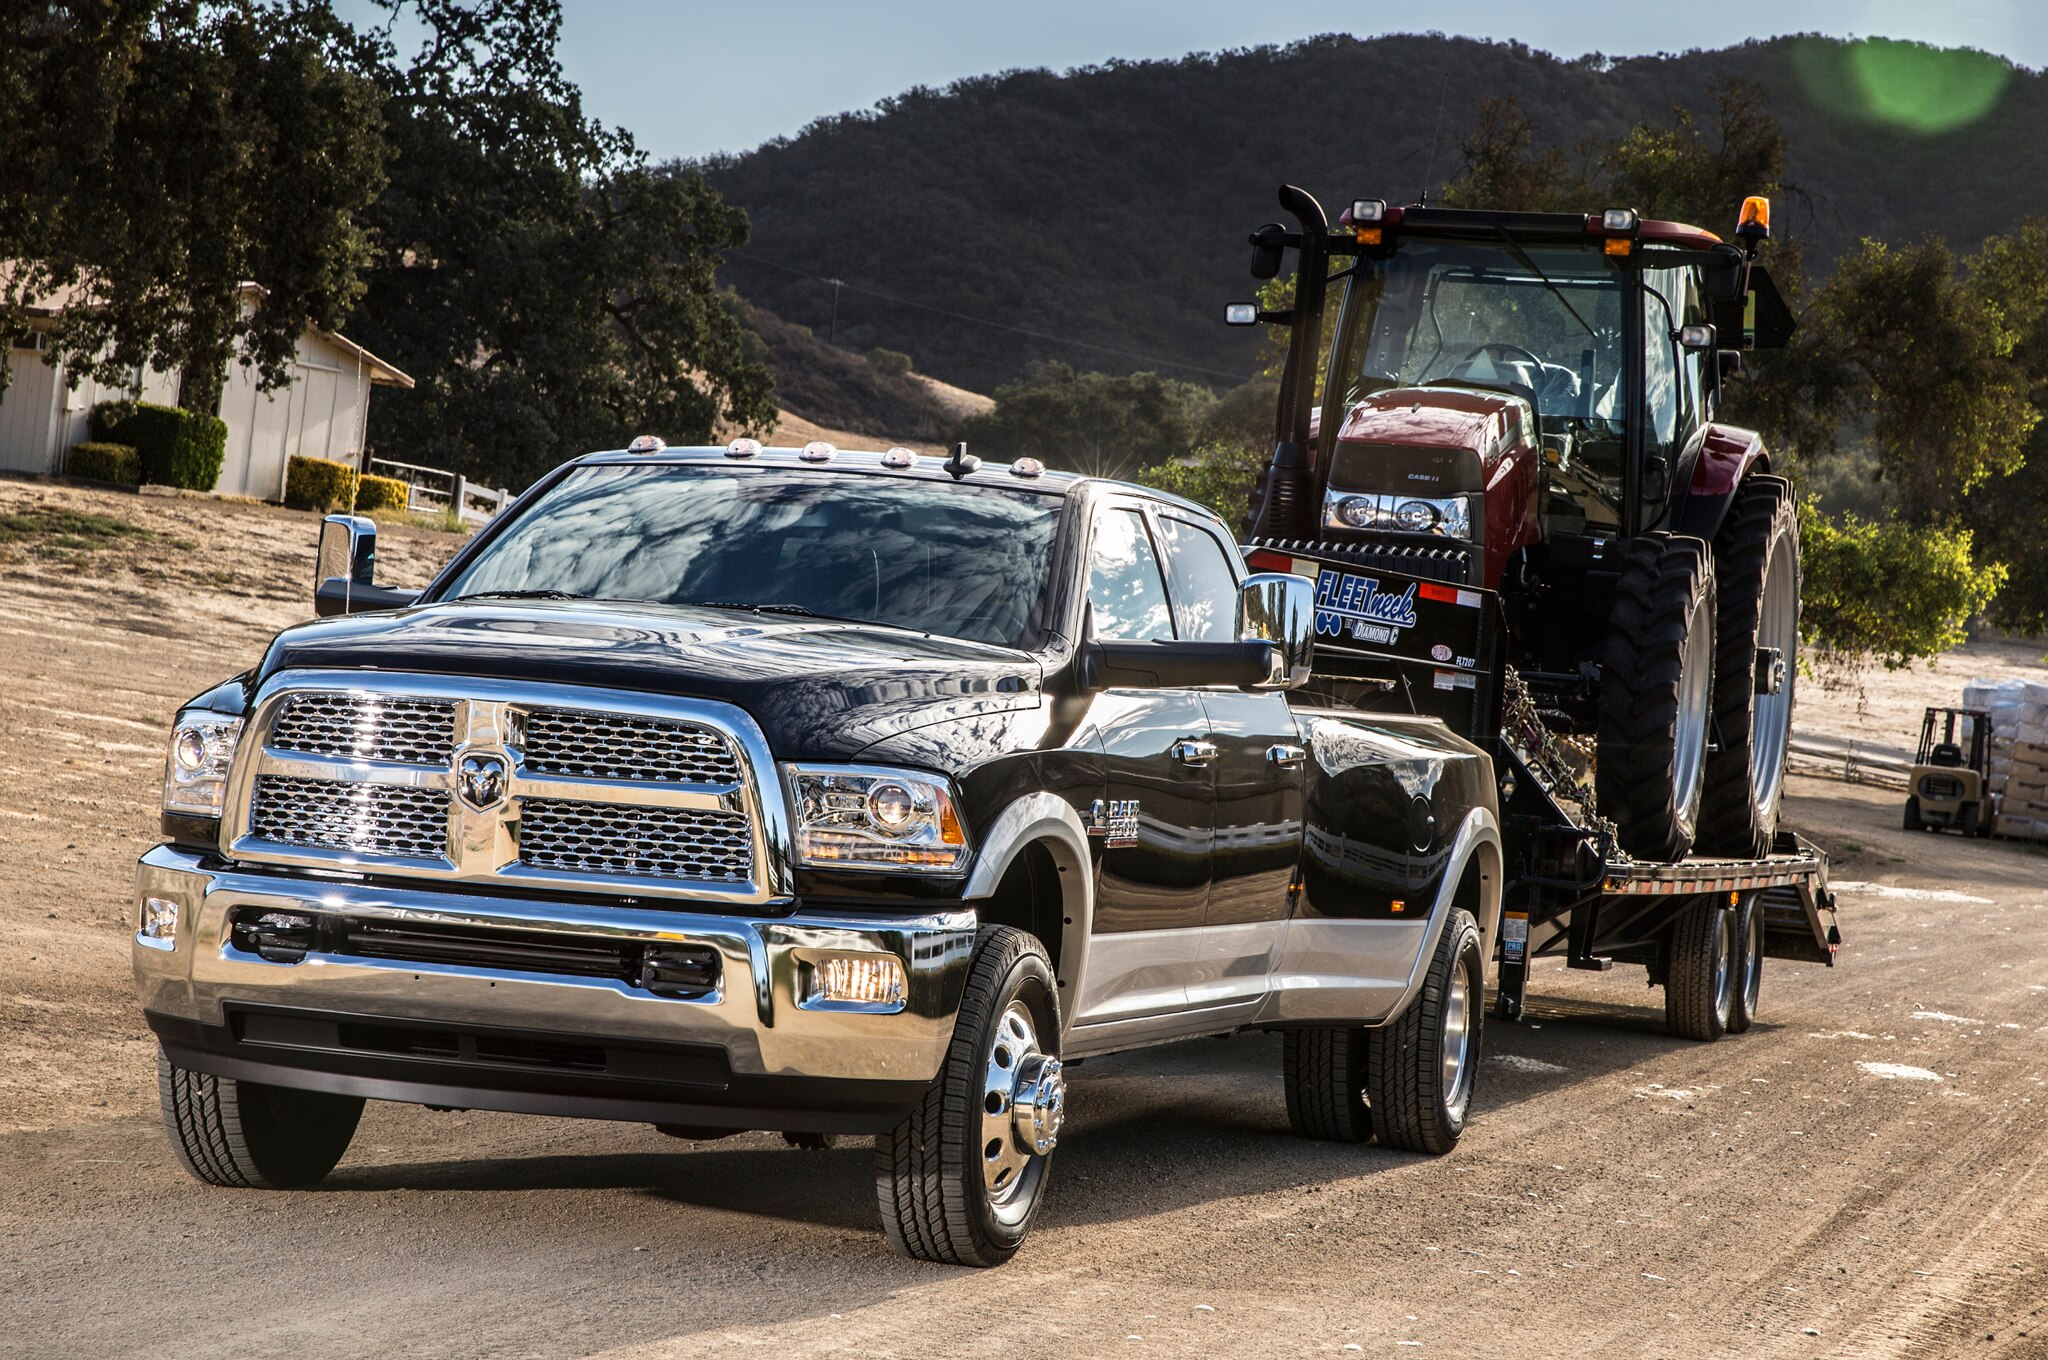 2014 Ram 3500 Heavy Duty Dualie Laramie Towing1